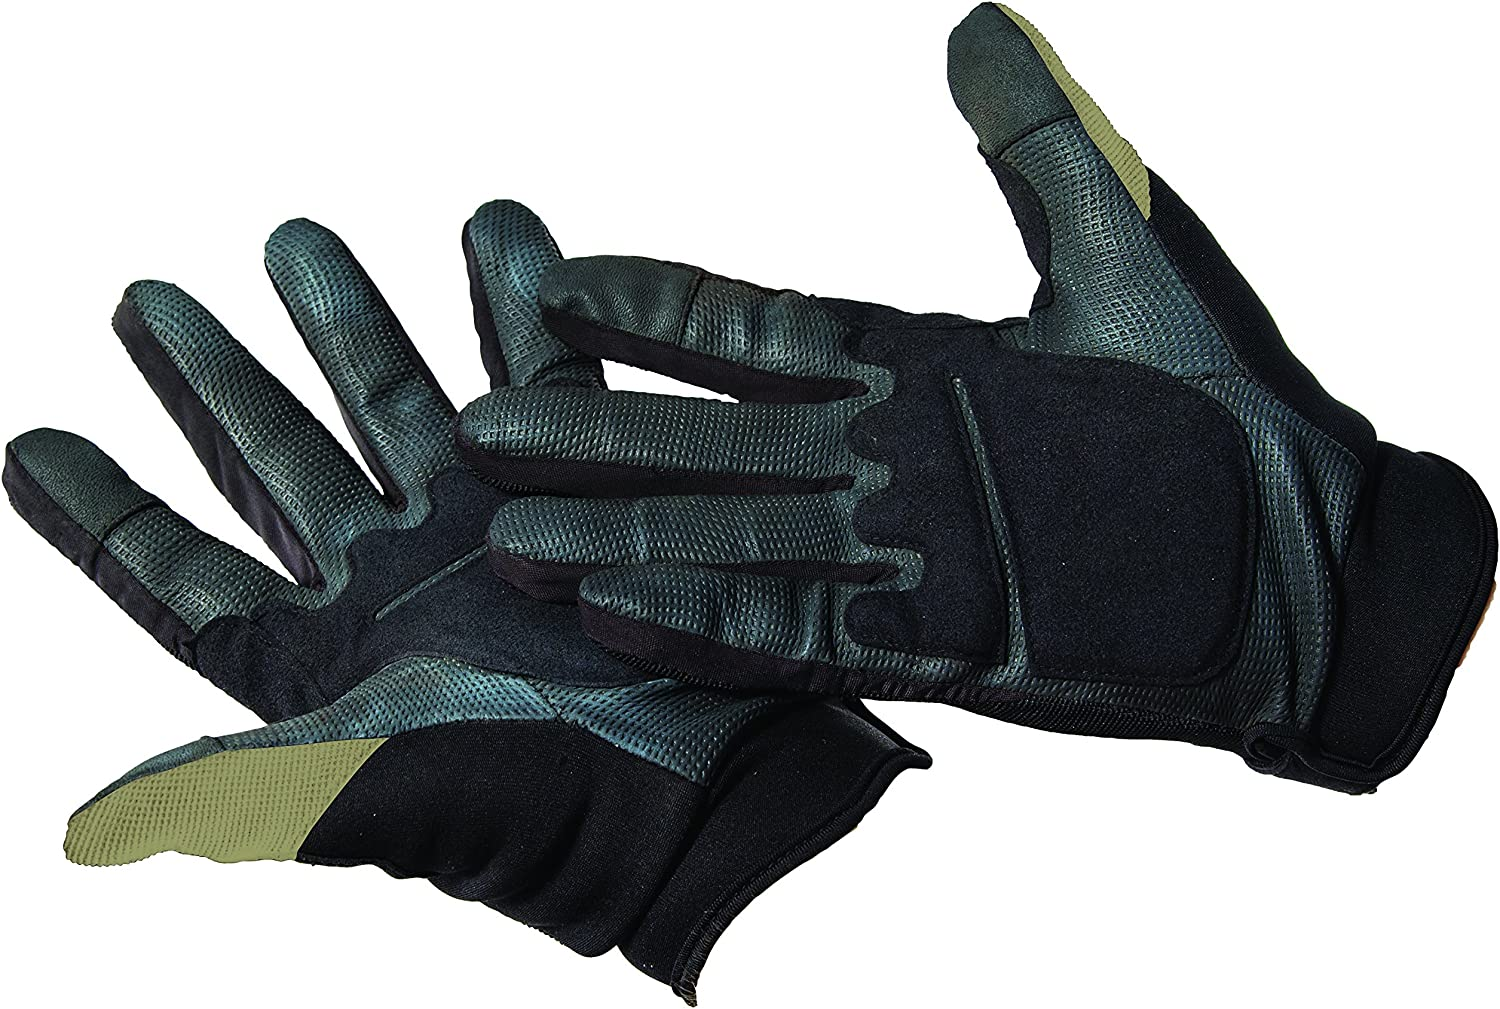 Caldwell Ultimate Shooting Gloves Breatheable with Shipping included Pad Popular products Material